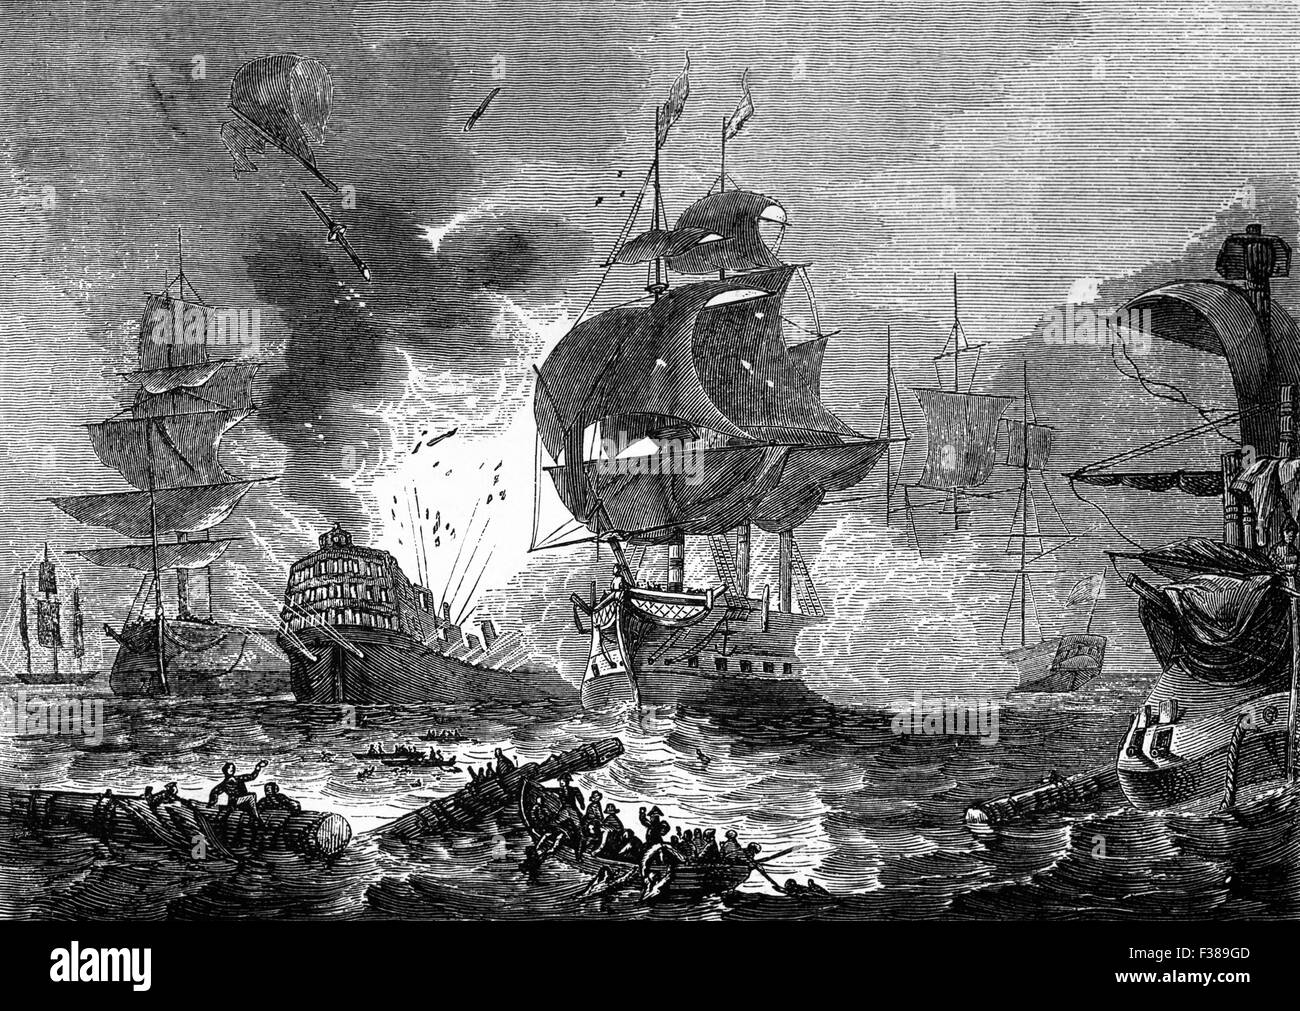 The Battle of the Nile, a major naval battle fought between British and French fleets at Aboukir Bay on the Mediterranean - Stock Image